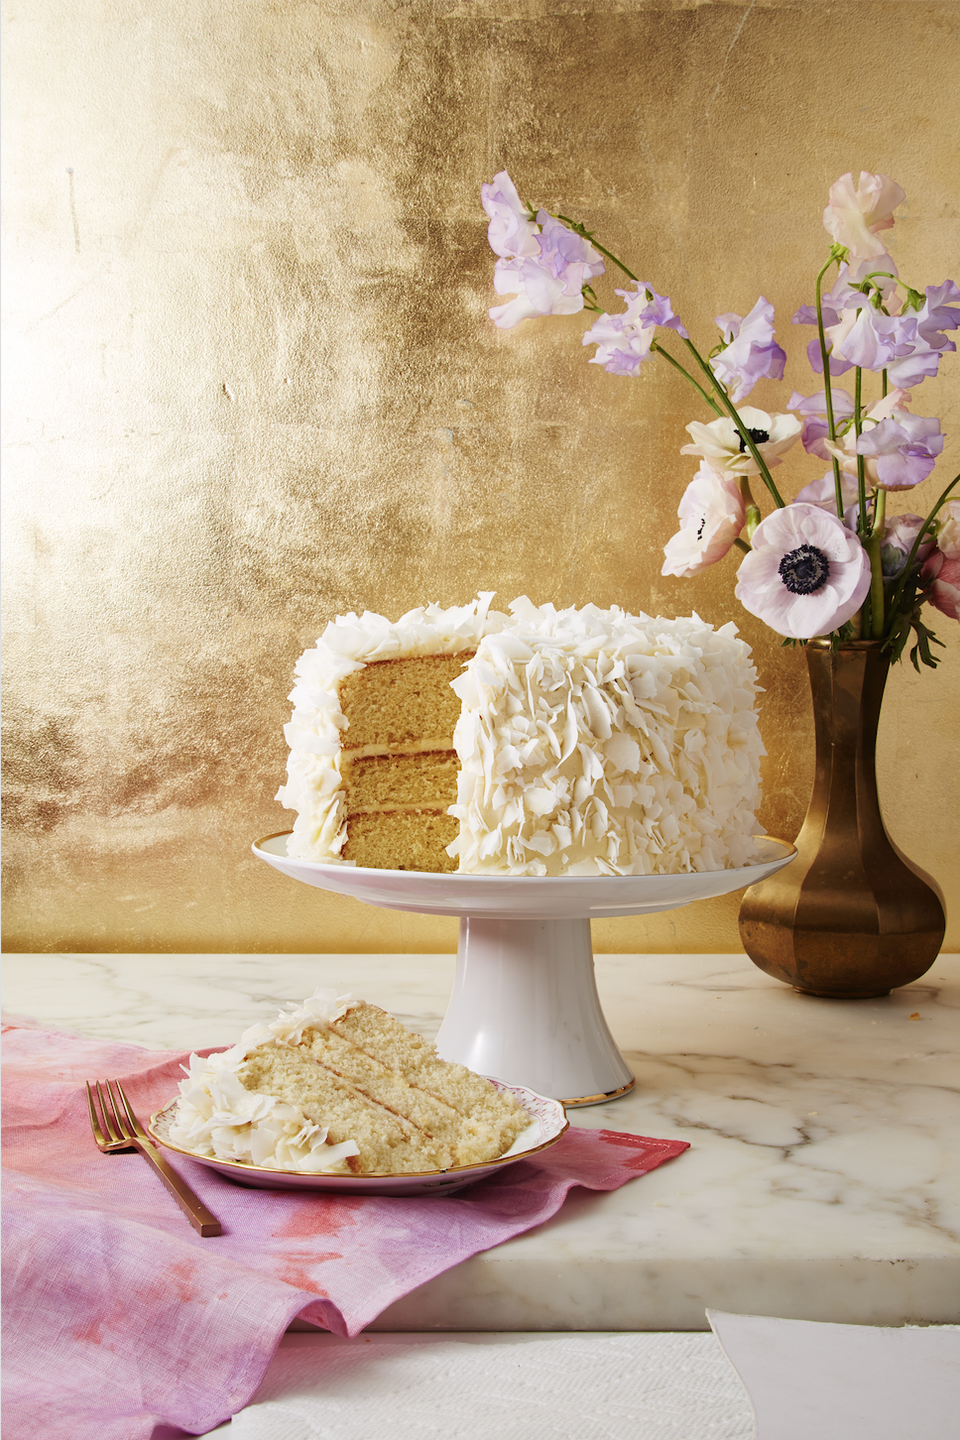 "<p>It's a holiday, why not go all out with the dessert? This triple-layer confection will turn heads.</p><p><em><a href=""https://www.goodhousekeeping.com/food-recipes/a37460/coconut-layer-cake-with-cream-cheese-frosting-recipe/"" rel=""nofollow noopener"" target=""_blank"" data-ylk=""slk:Get the recipe for Coconut Layer Cake With Cream Cheese Frosting »"" class=""link rapid-noclick-resp"">Get the recipe for Coconut Layer Cake With Cream Cheese Frosting »</a></em></p><p><strong>RELATED: </strong><a href=""https://www.goodhousekeeping.com/holidays/easter-ideas/g4156/easter-cakes/"" rel=""nofollow noopener"" target=""_blank"" data-ylk=""slk:40 Beautiful Easter Cakes That Anyone Can Make"" class=""link rapid-noclick-resp"">40 Beautiful Easter Cakes That Anyone Can Make</a><br></p>"